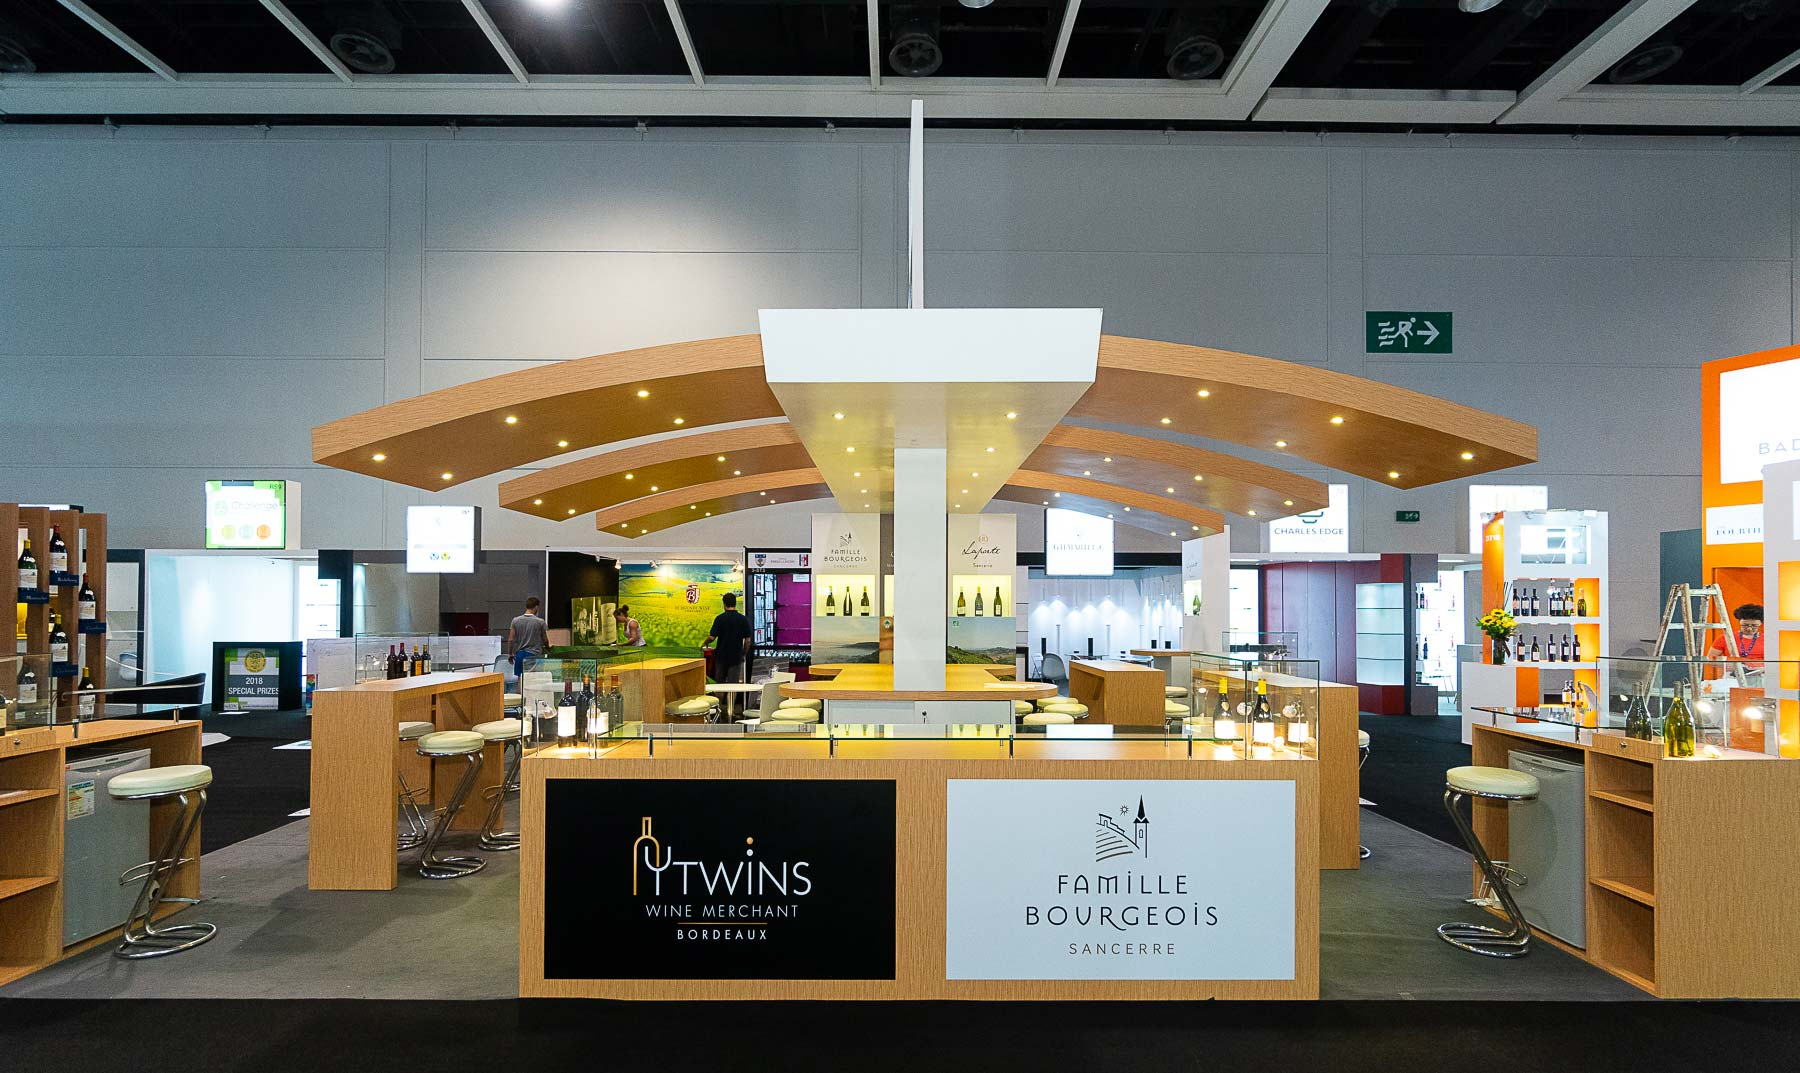 Conception du stand Famille Bourgeois et Twins pour le salon Vinexpo de Hong Kong